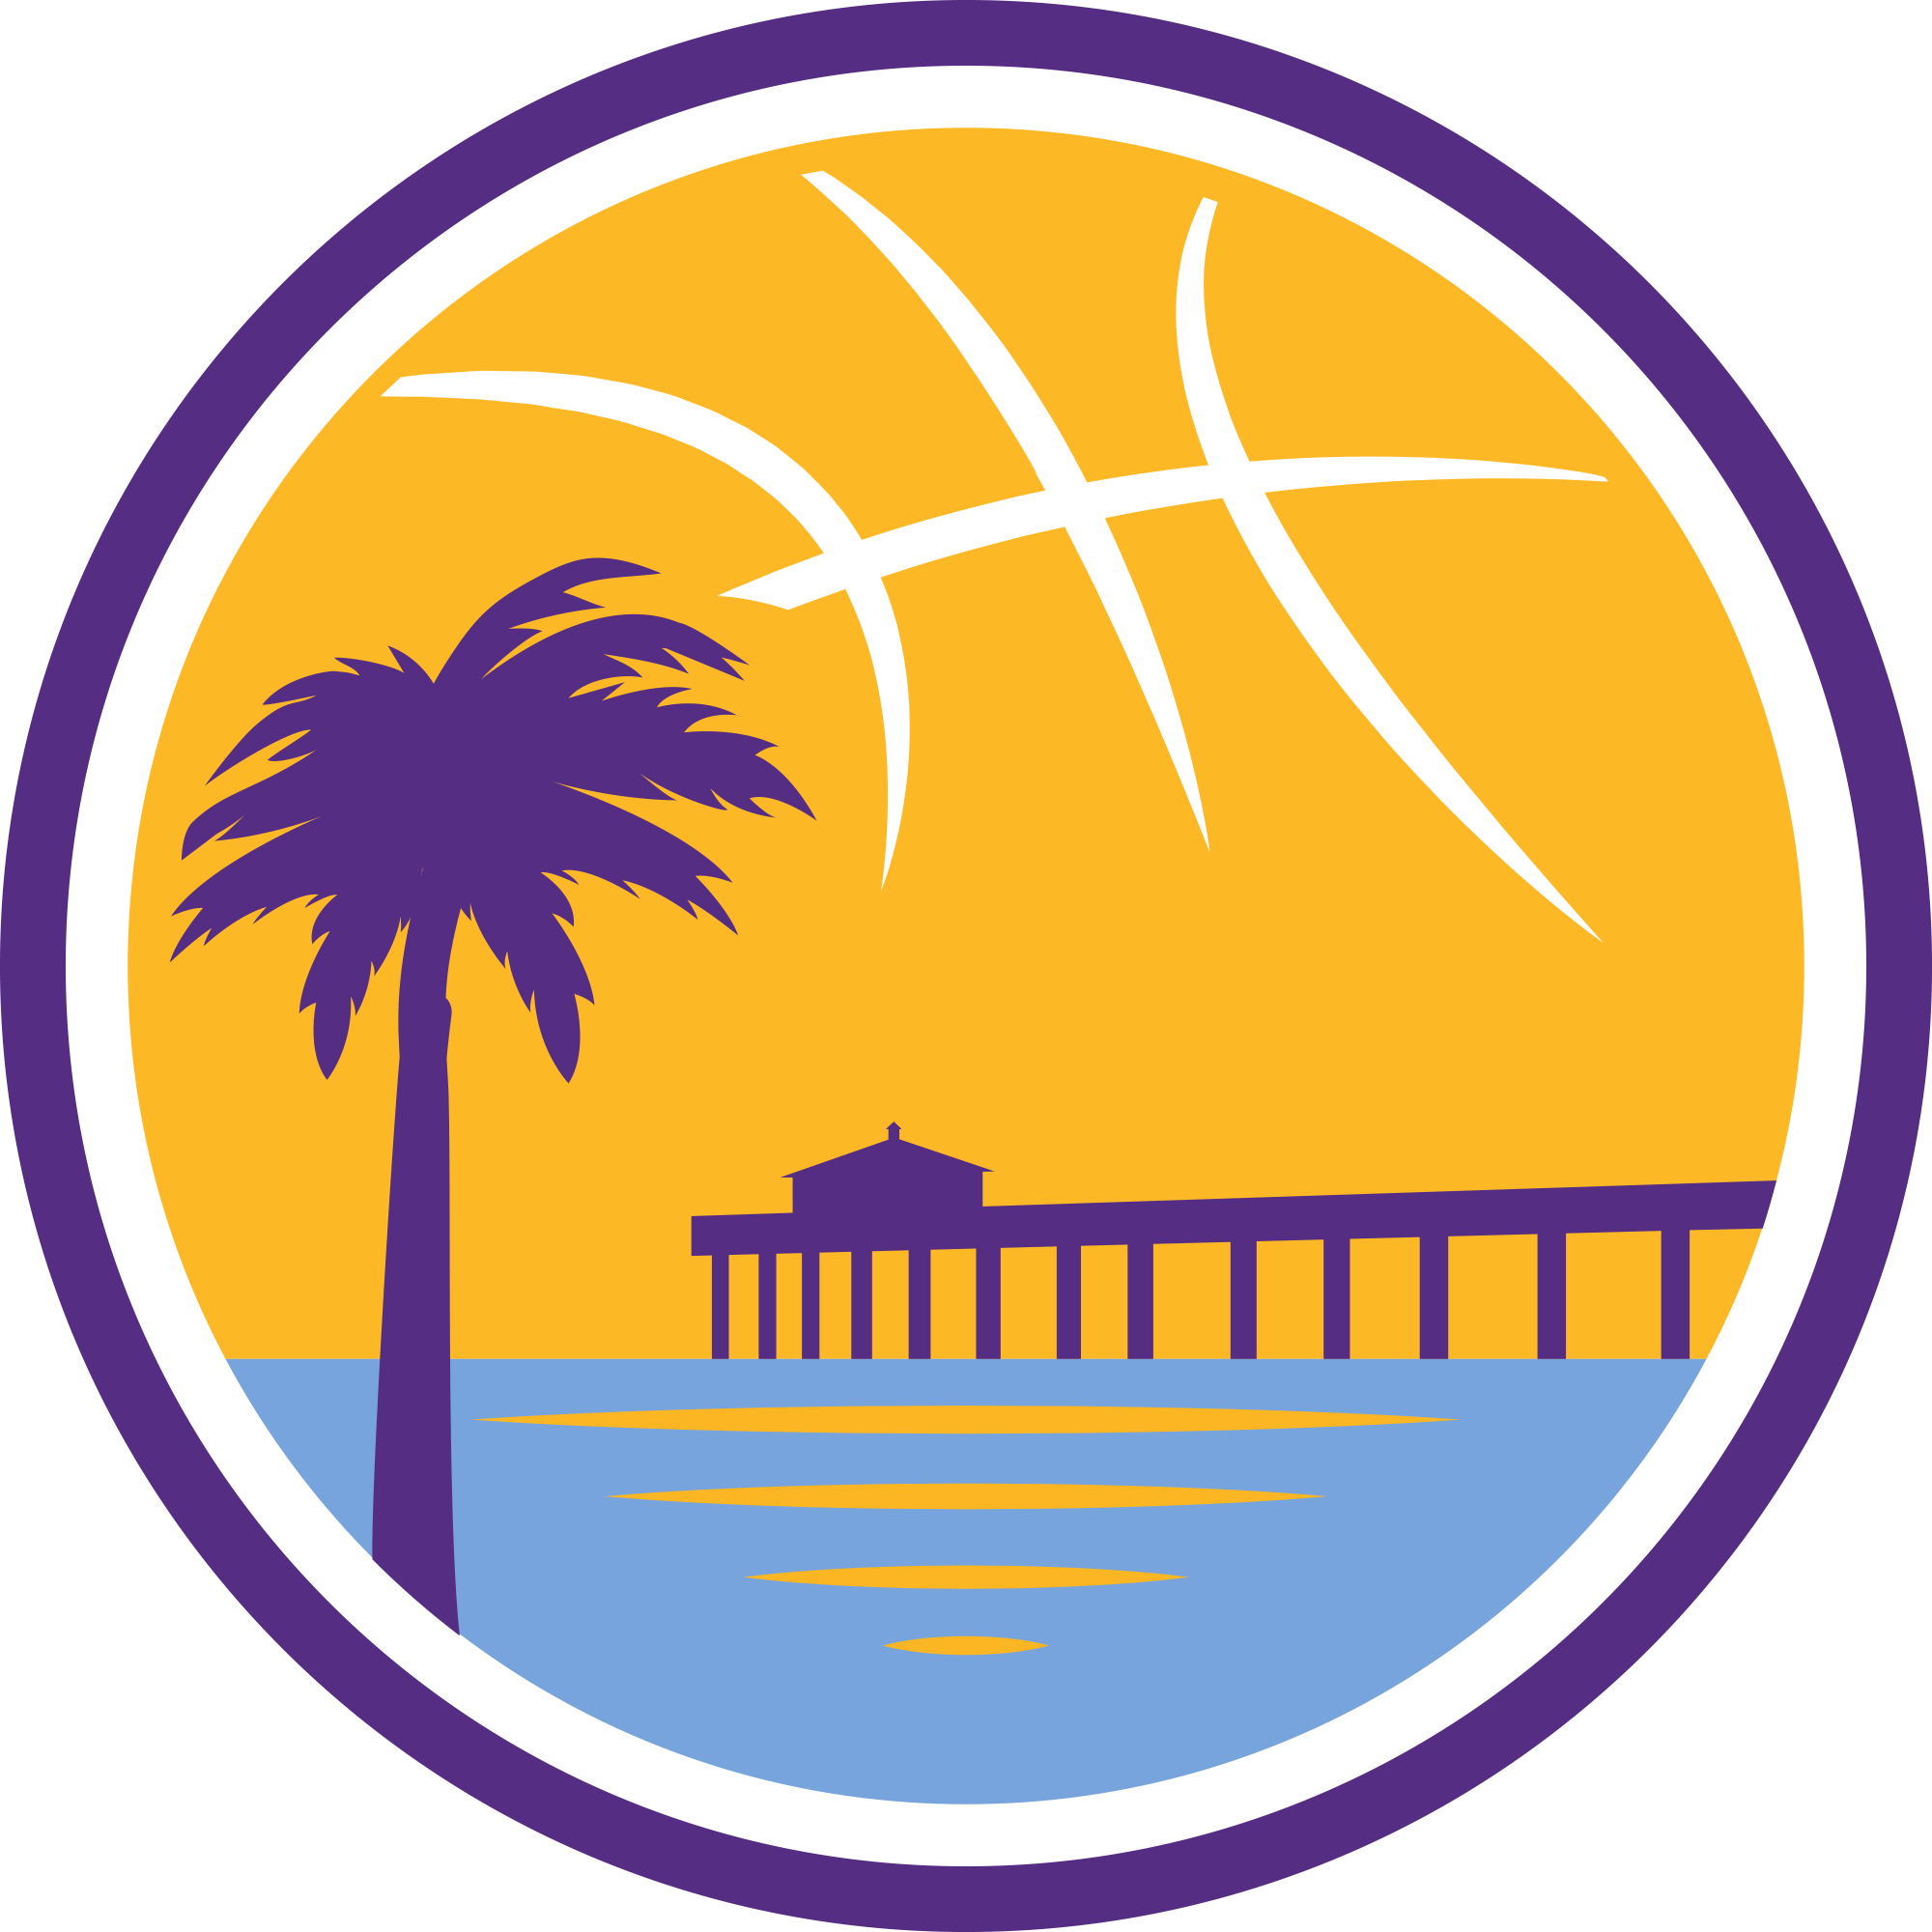 Lakers david nwaba and the d fenders fall in the first round of the secondary logo goes even further incorporating a pier and palm tree over the minimalist ocean view voltagebd Images